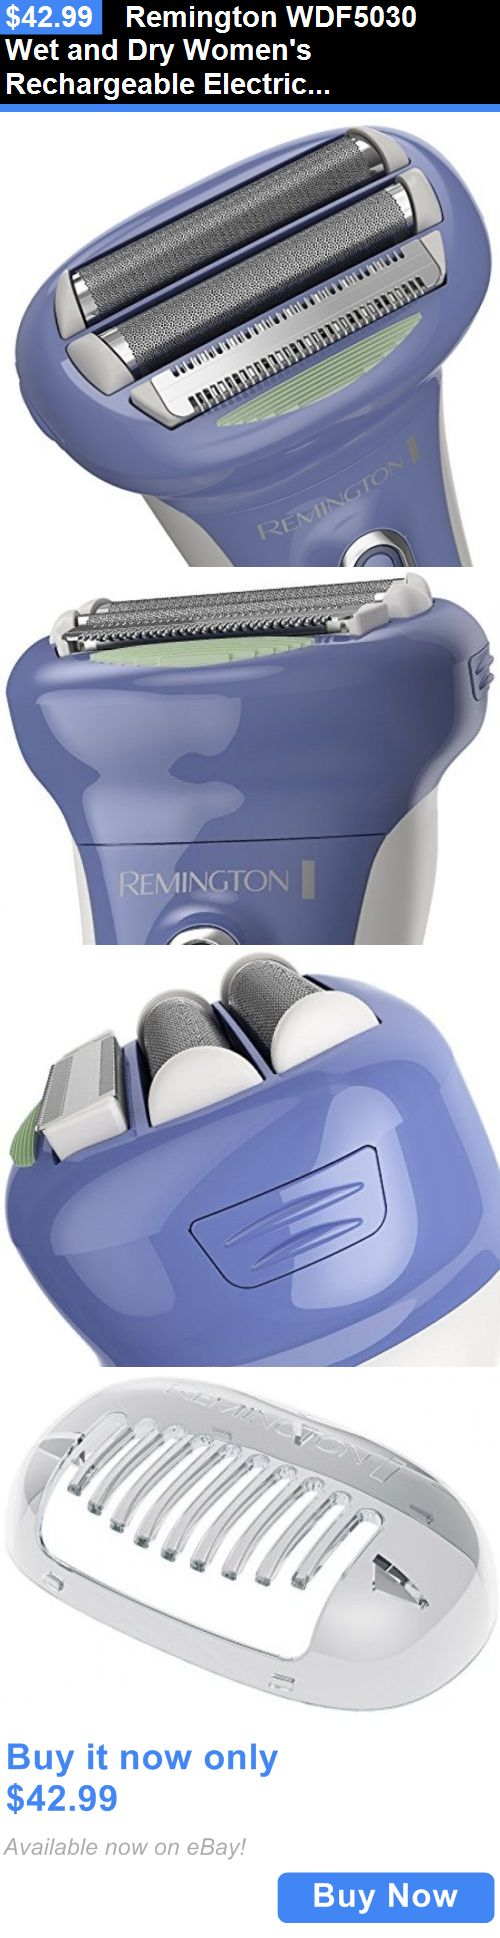 Womens Shavers: Remington Wdf5030 Wet And Dry Womens Rechargeable Electric Foil Shaver, Razor BUY IT NOW ONLY: $42.99